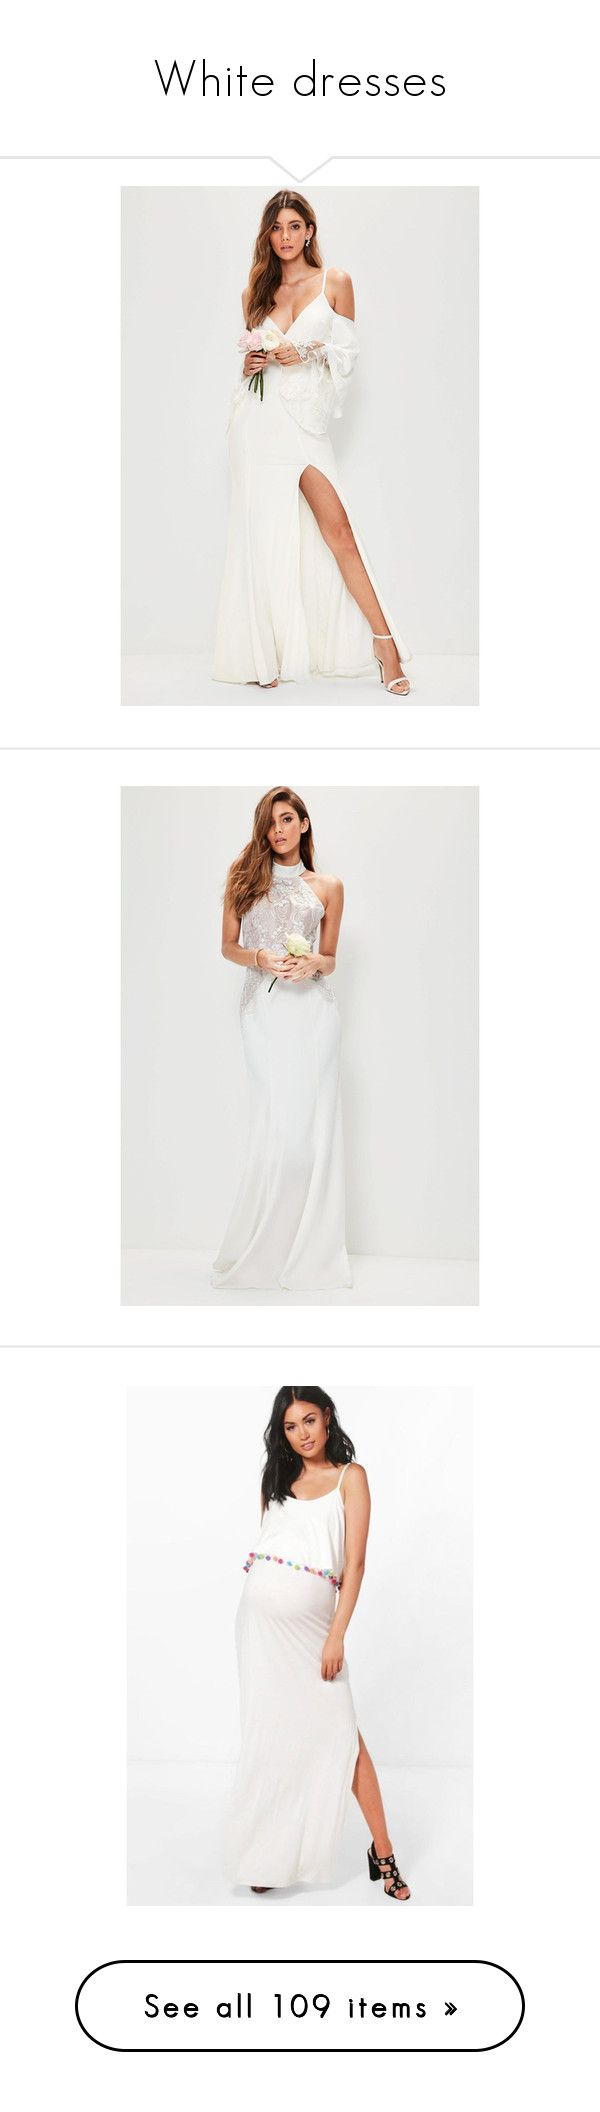 """""""White dresses"""" by ukdresslover ❤ liked on Polyvore featuring dresses, lace bridal dresses, white bridal dresses, plunge neck maxi dress, white dress, plunging neckline maxi dress, wedding dresses, floral print maxi dress, floral dresses and petite maxi dresses"""